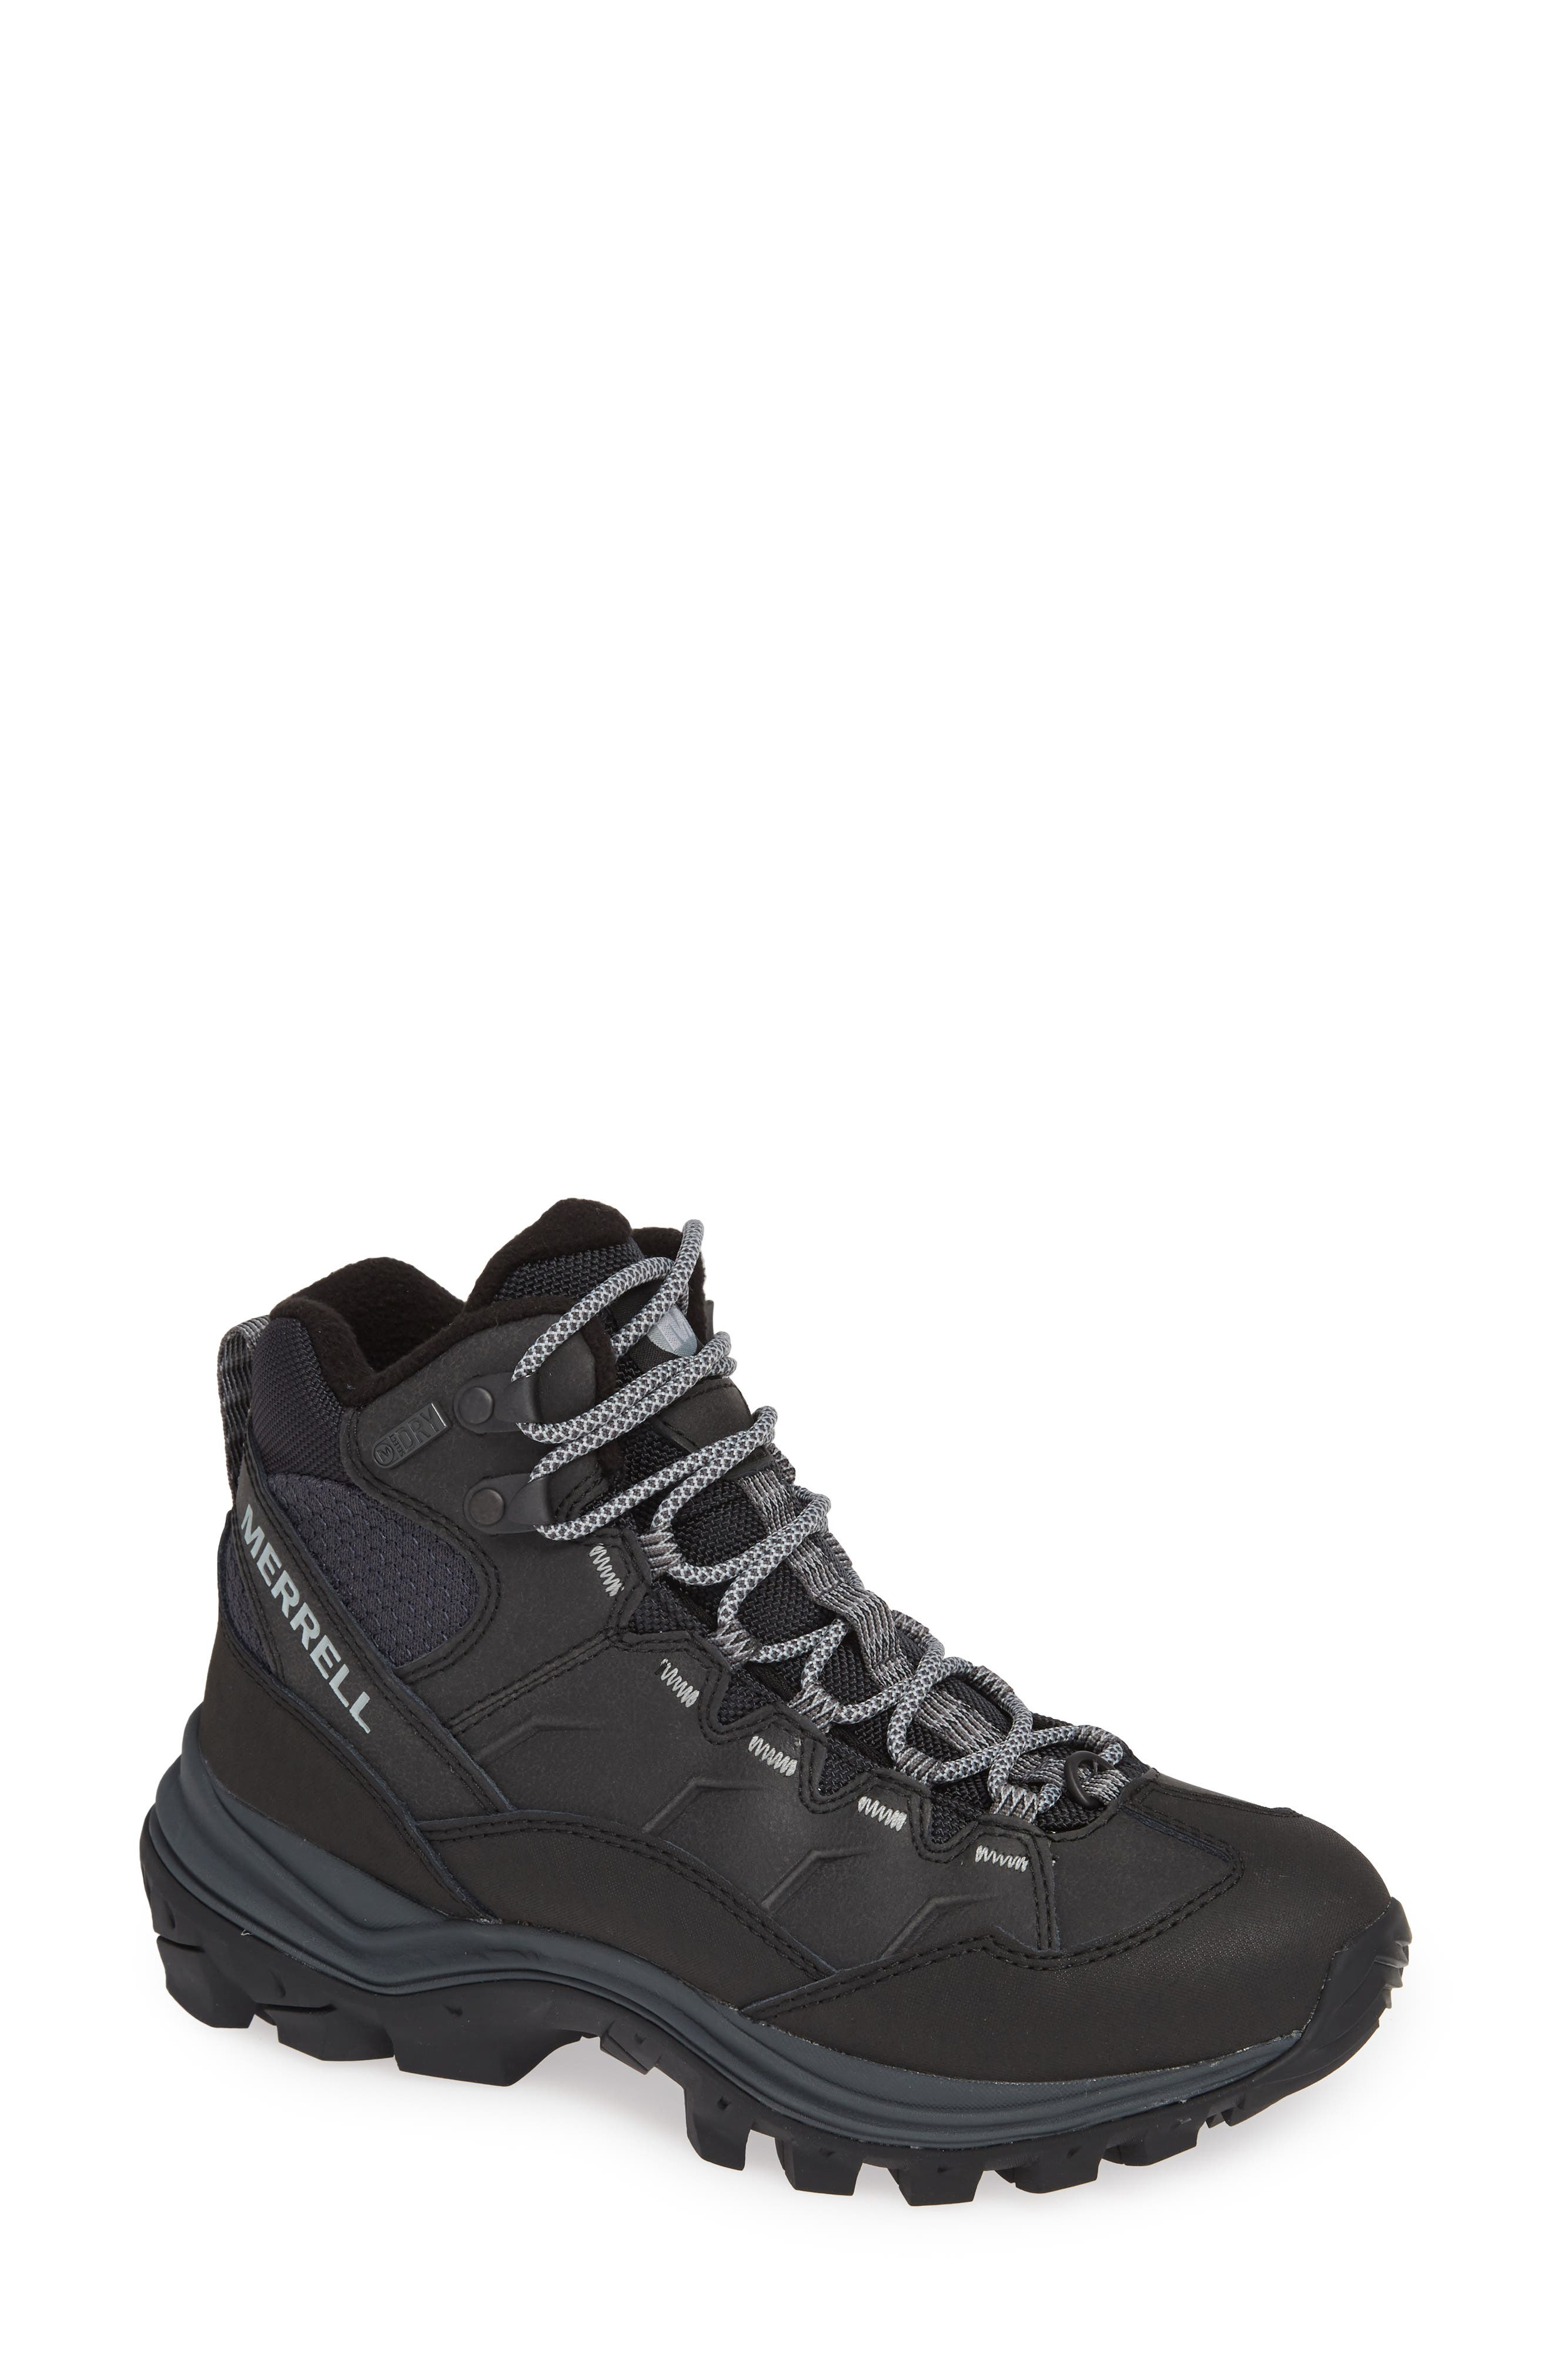 Merrell Thermo Chill Waterproof Snow Boot- Black